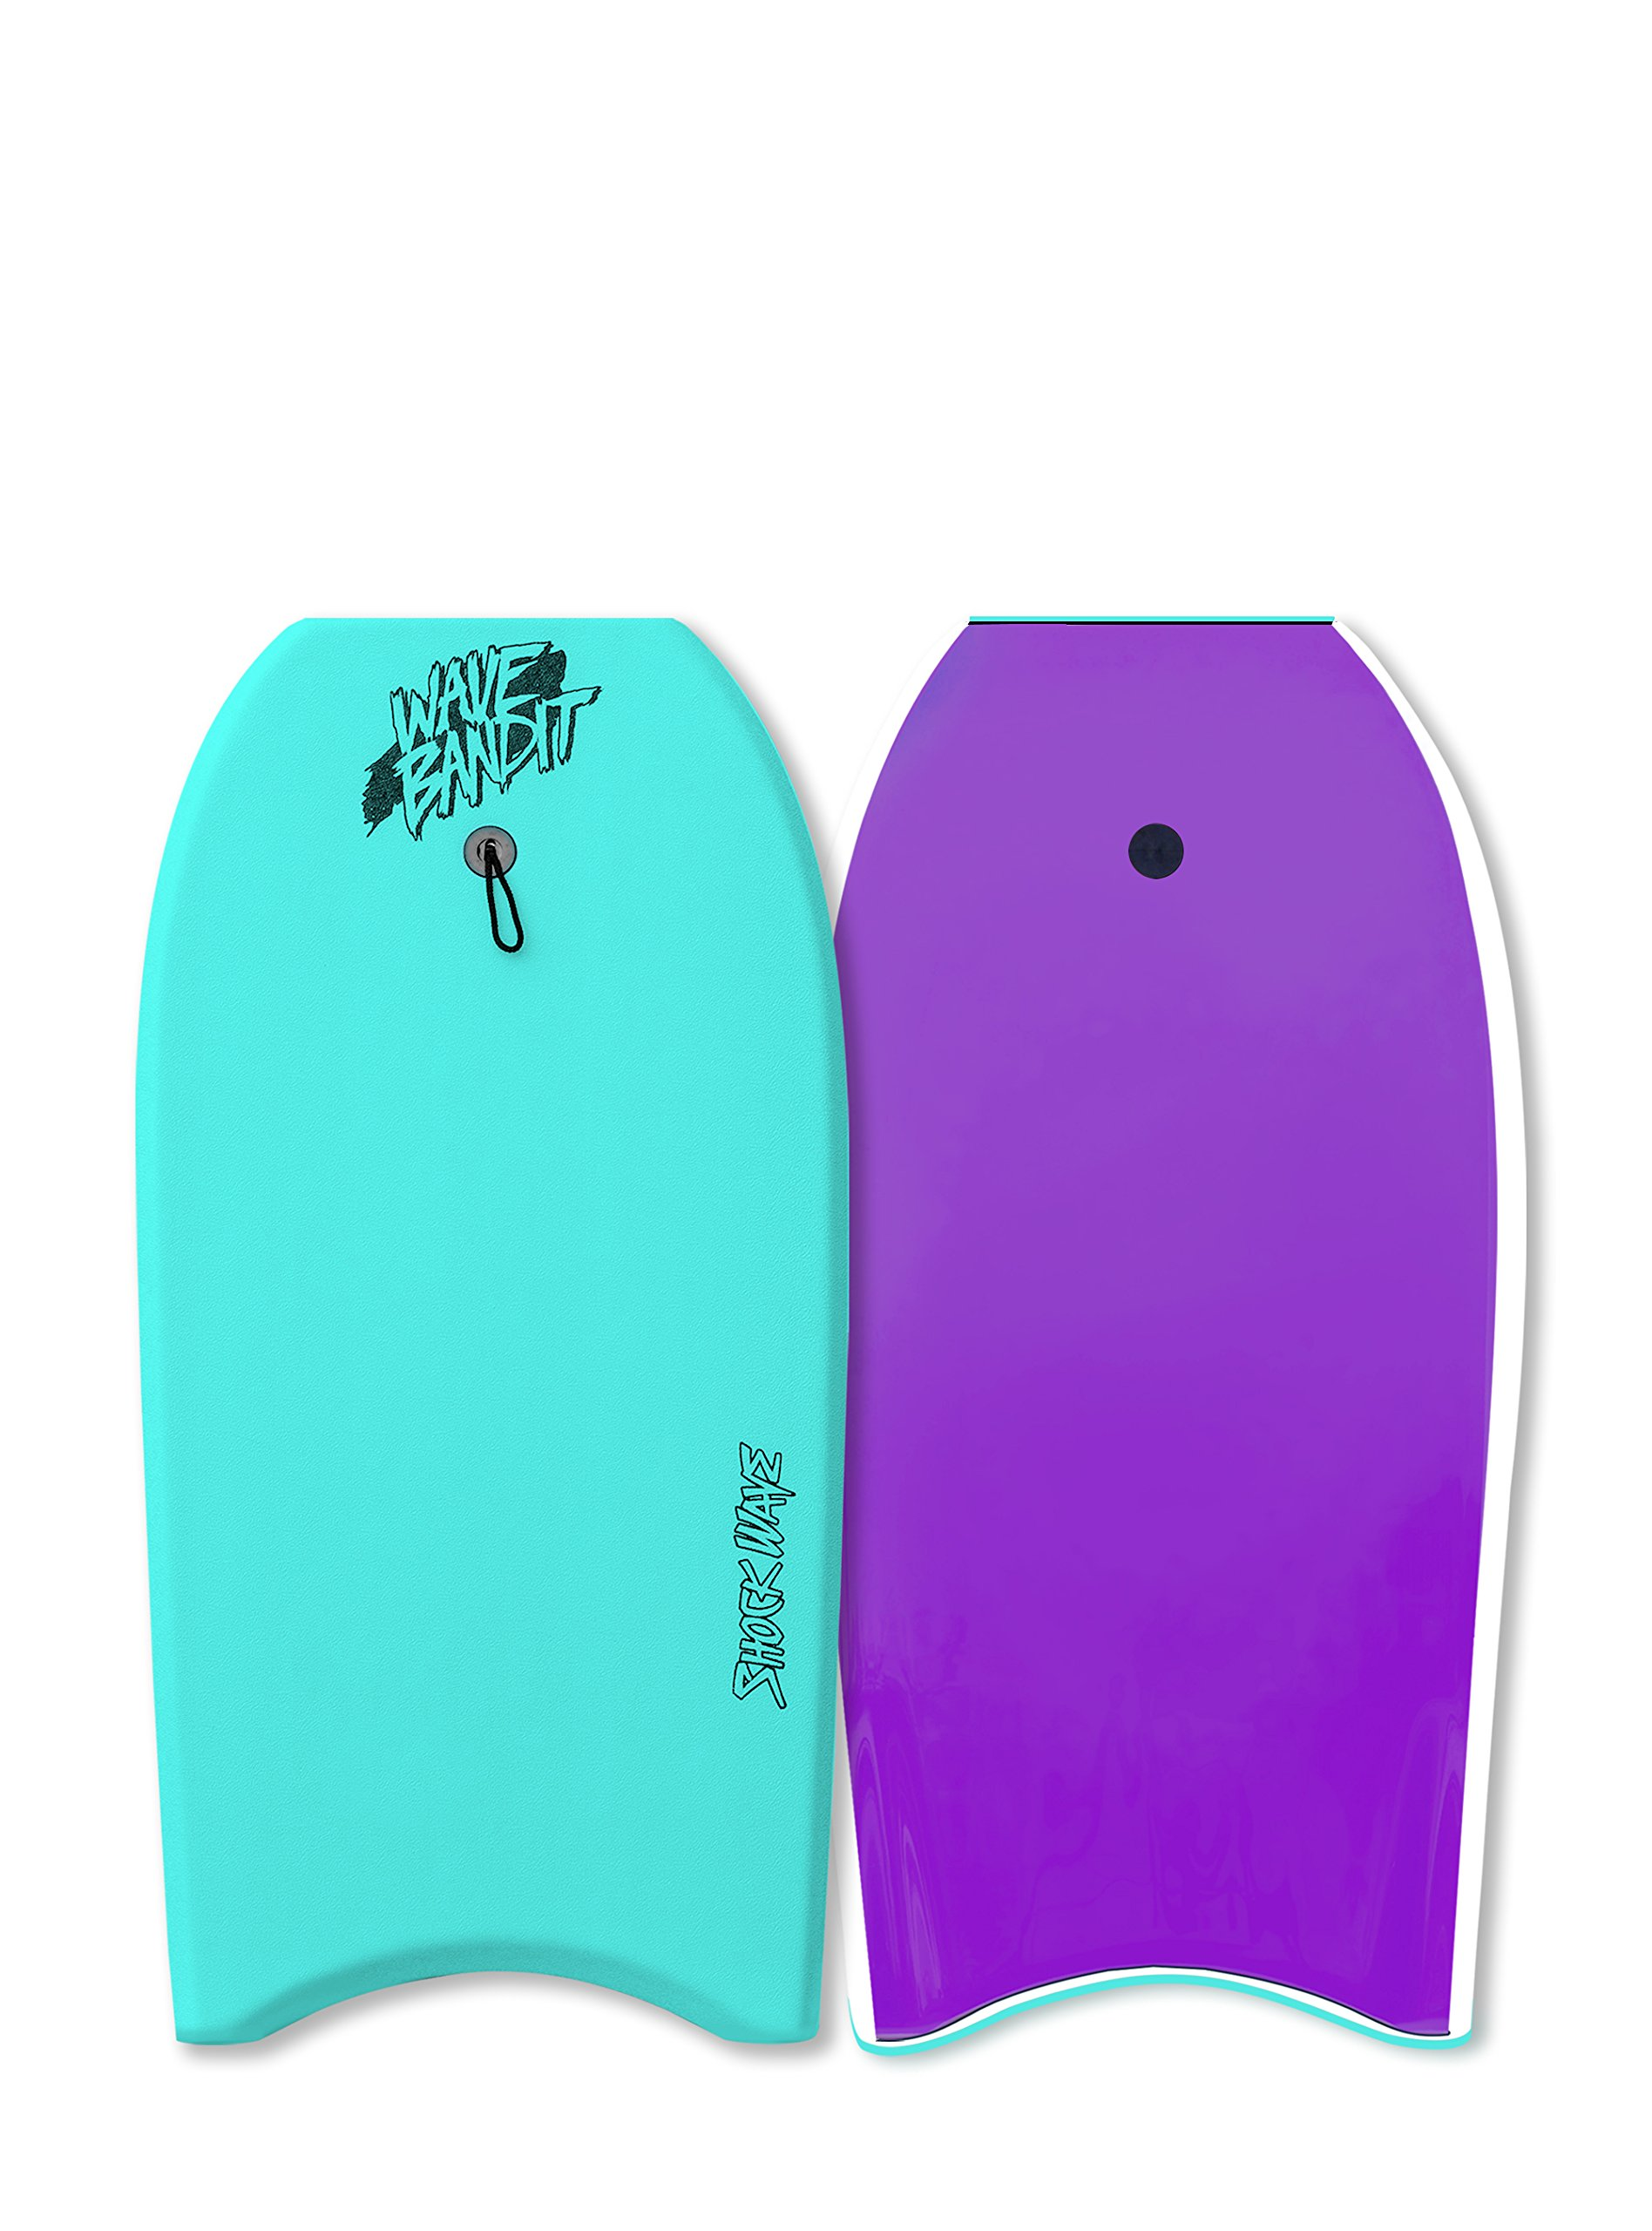 Wave Bandit Shockwave Turquoise, 45'' by Wave Bandit